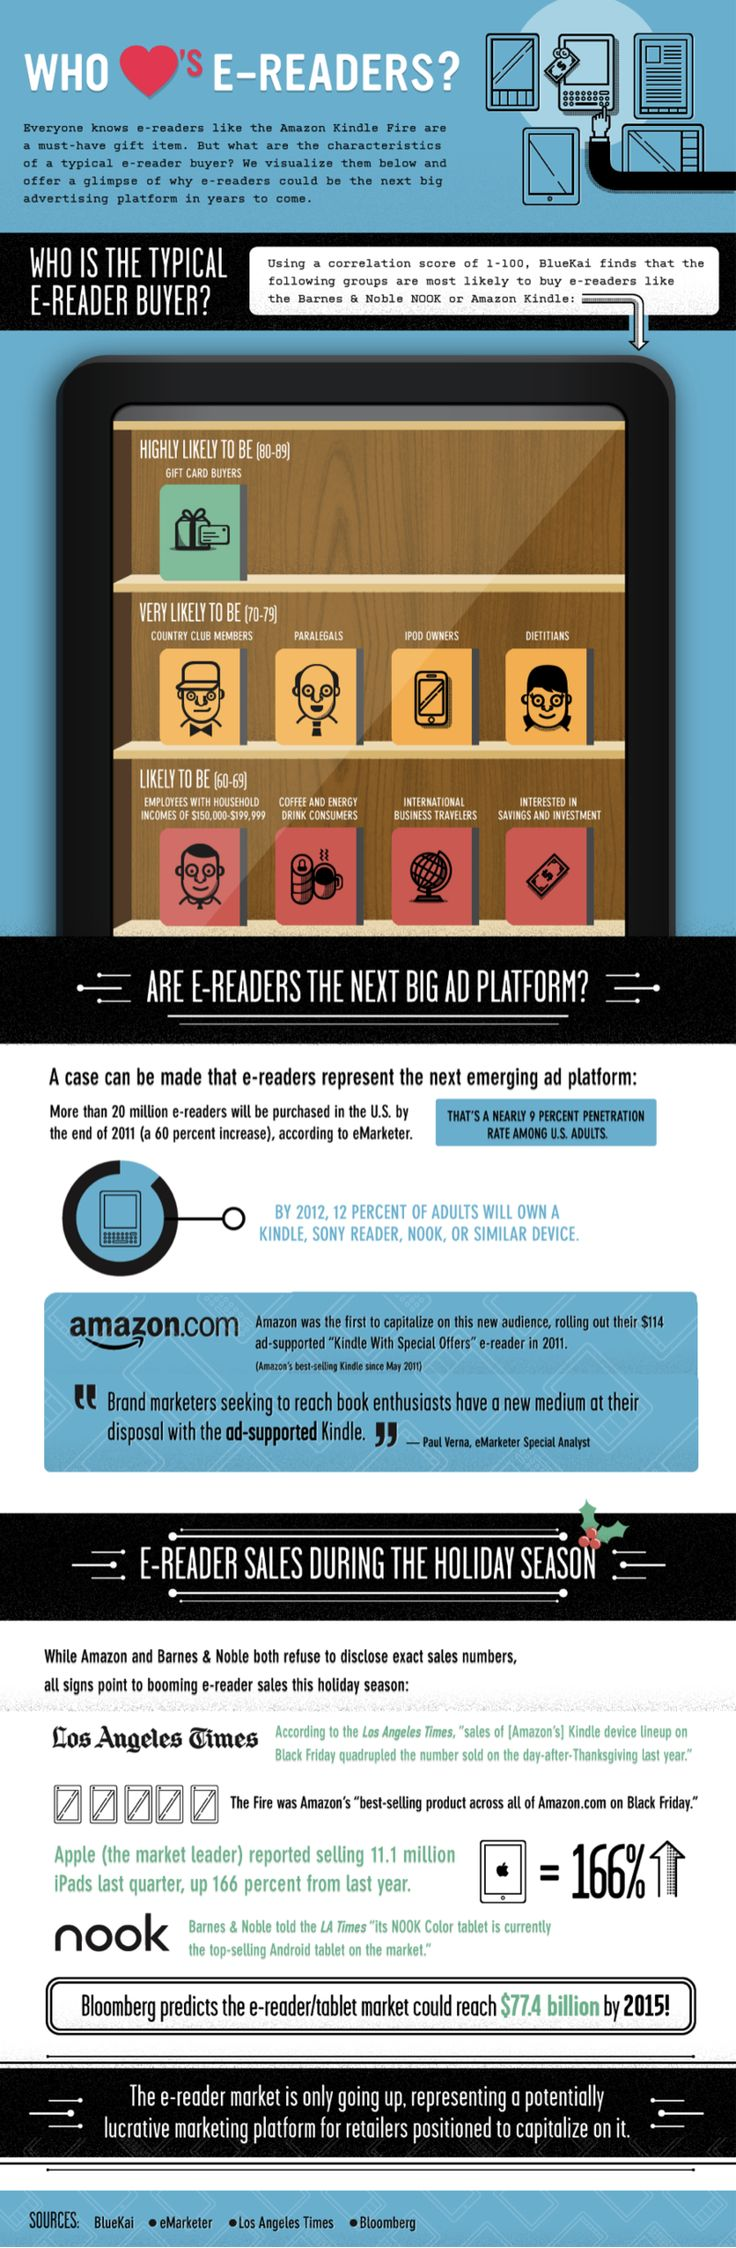 Why Should Retailers and Advertisers Capitalize On The E-Reader Market? #infographic